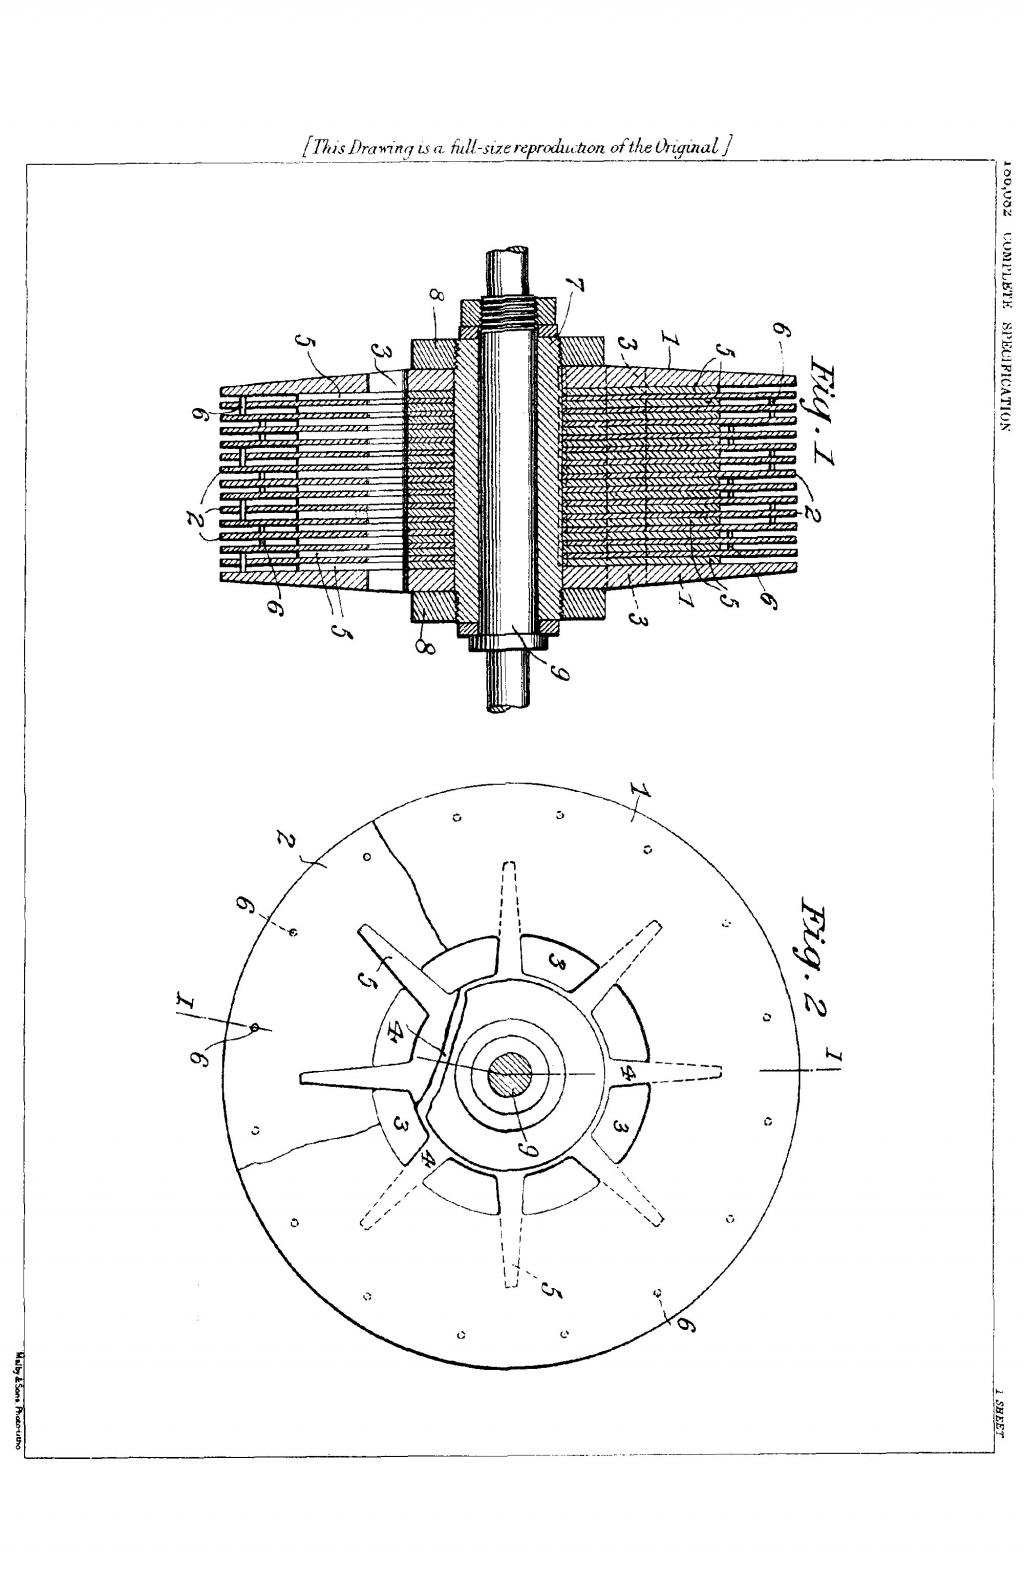 Nikola Tesla British Patent 186,082 - Improvements in the Construction of Steam and Gas Turbines - Image 1